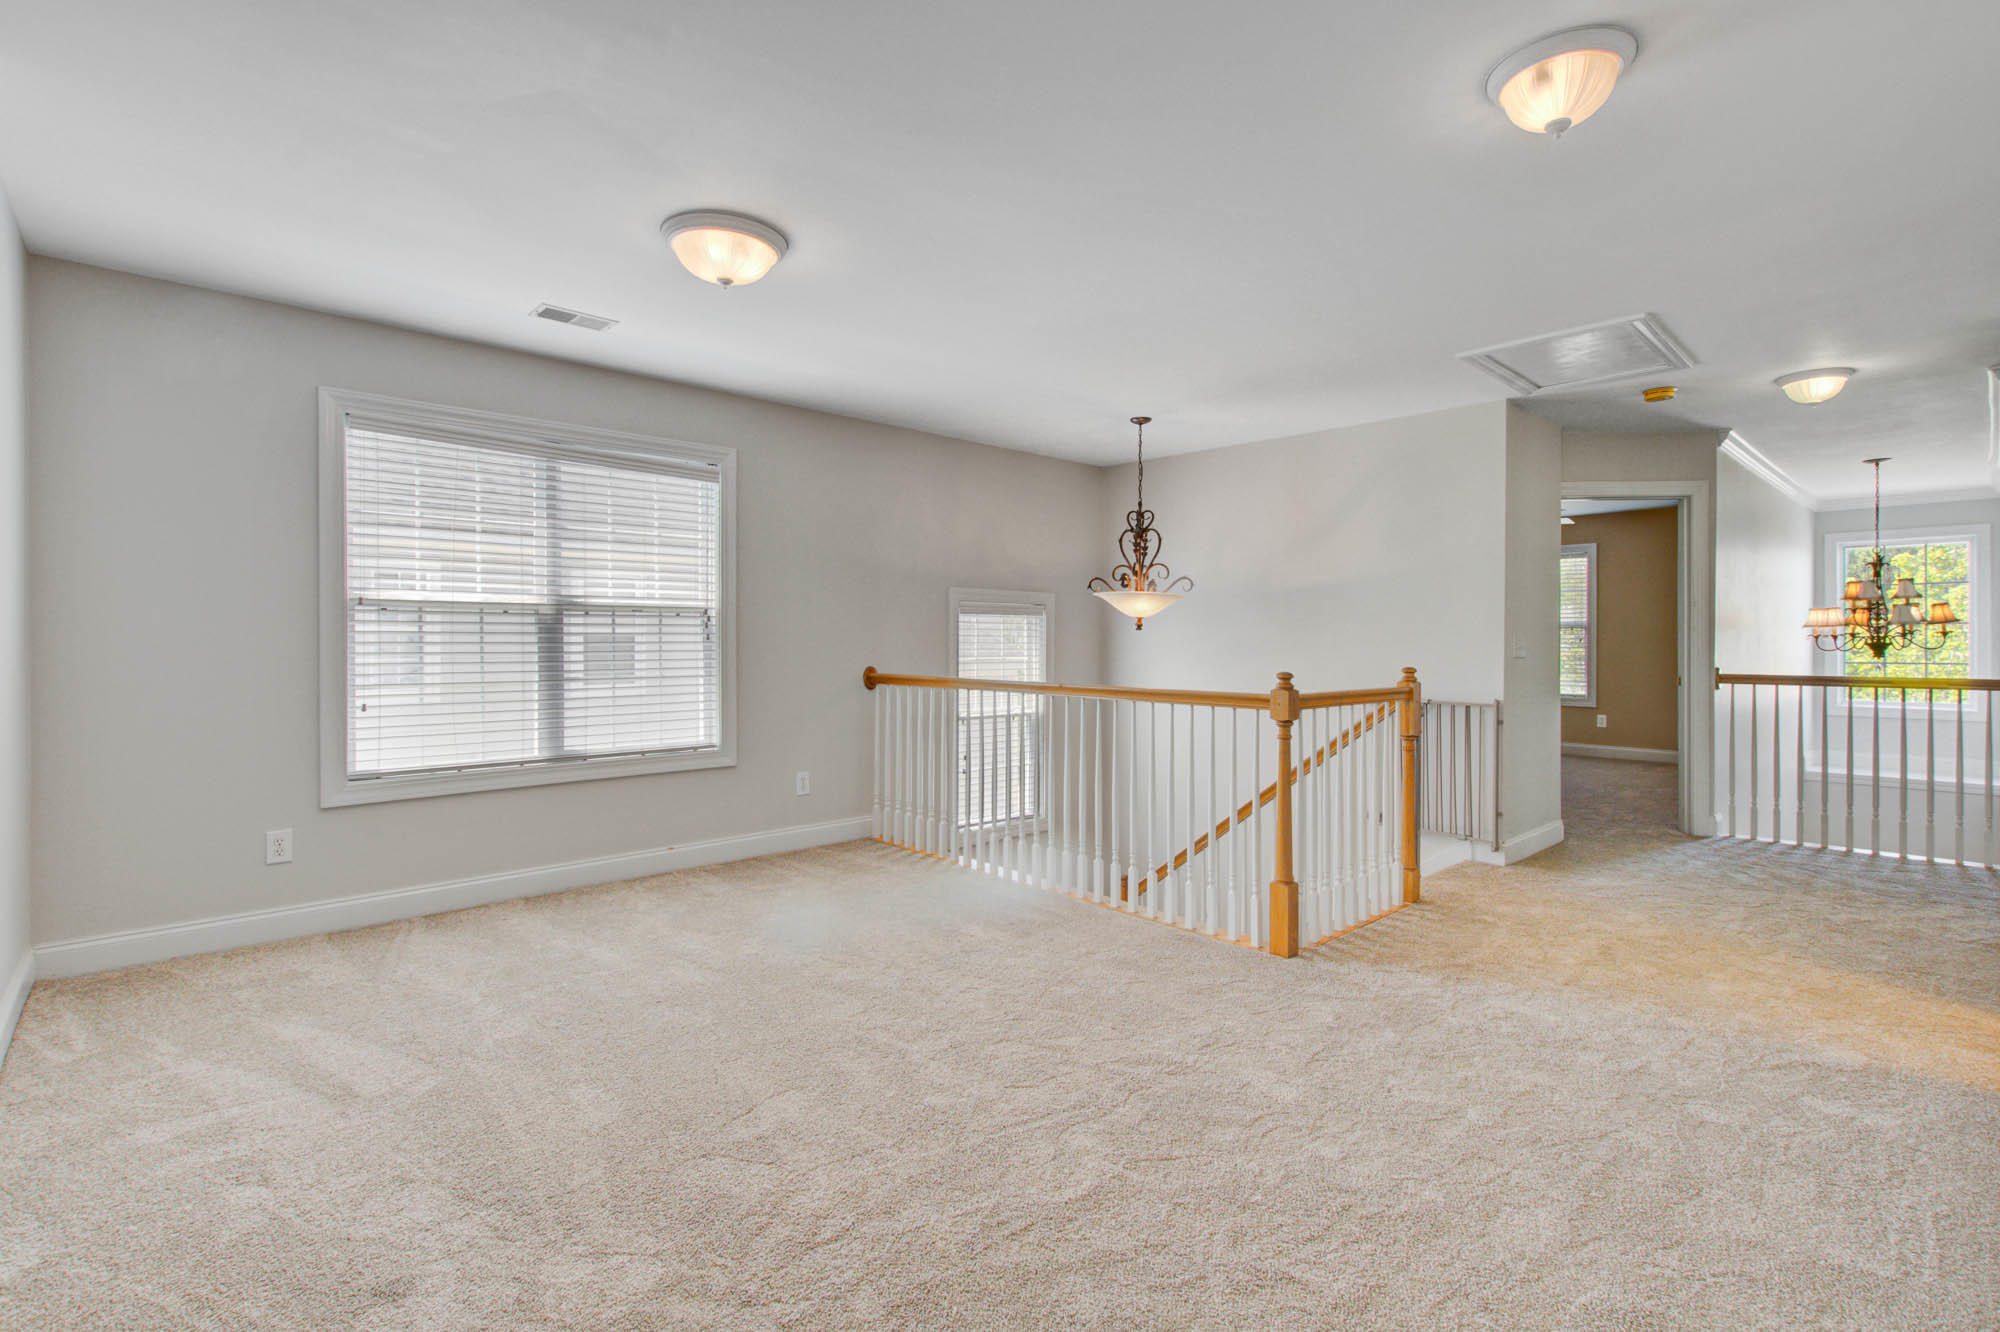 Rivertowne On The Wando Homes For Sale - 2193 Sandy Point, Mount Pleasant, SC - 9